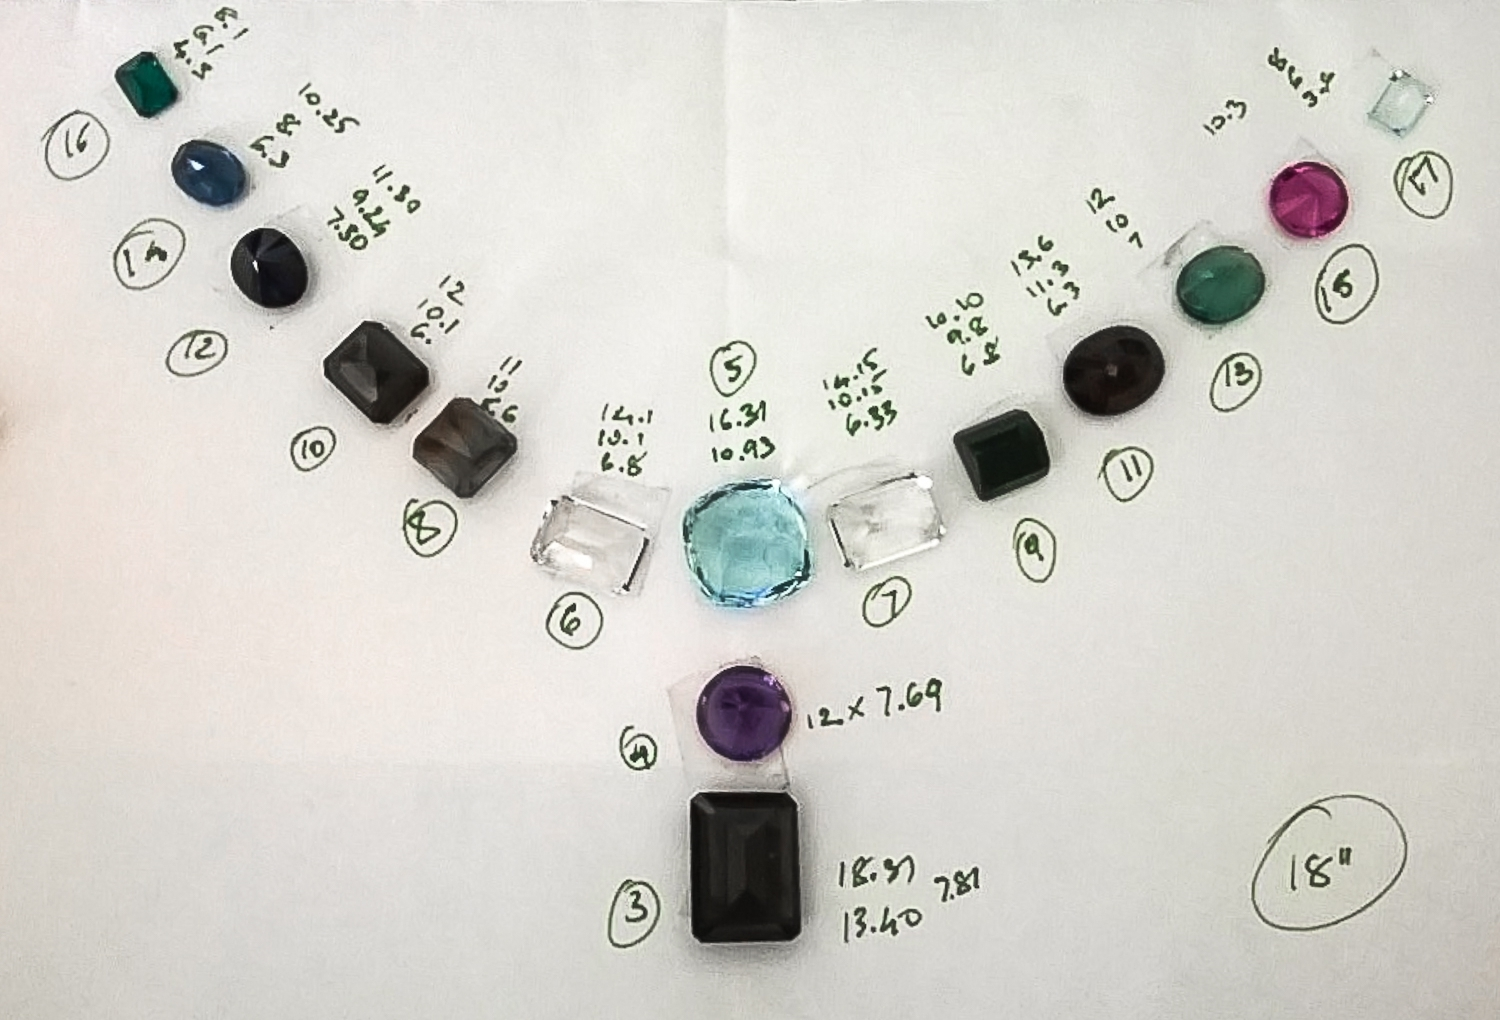 We lay them out on a diagram in the appropriate sequence and spacing.  Each gem is measured and giving an identifying number in the layout.